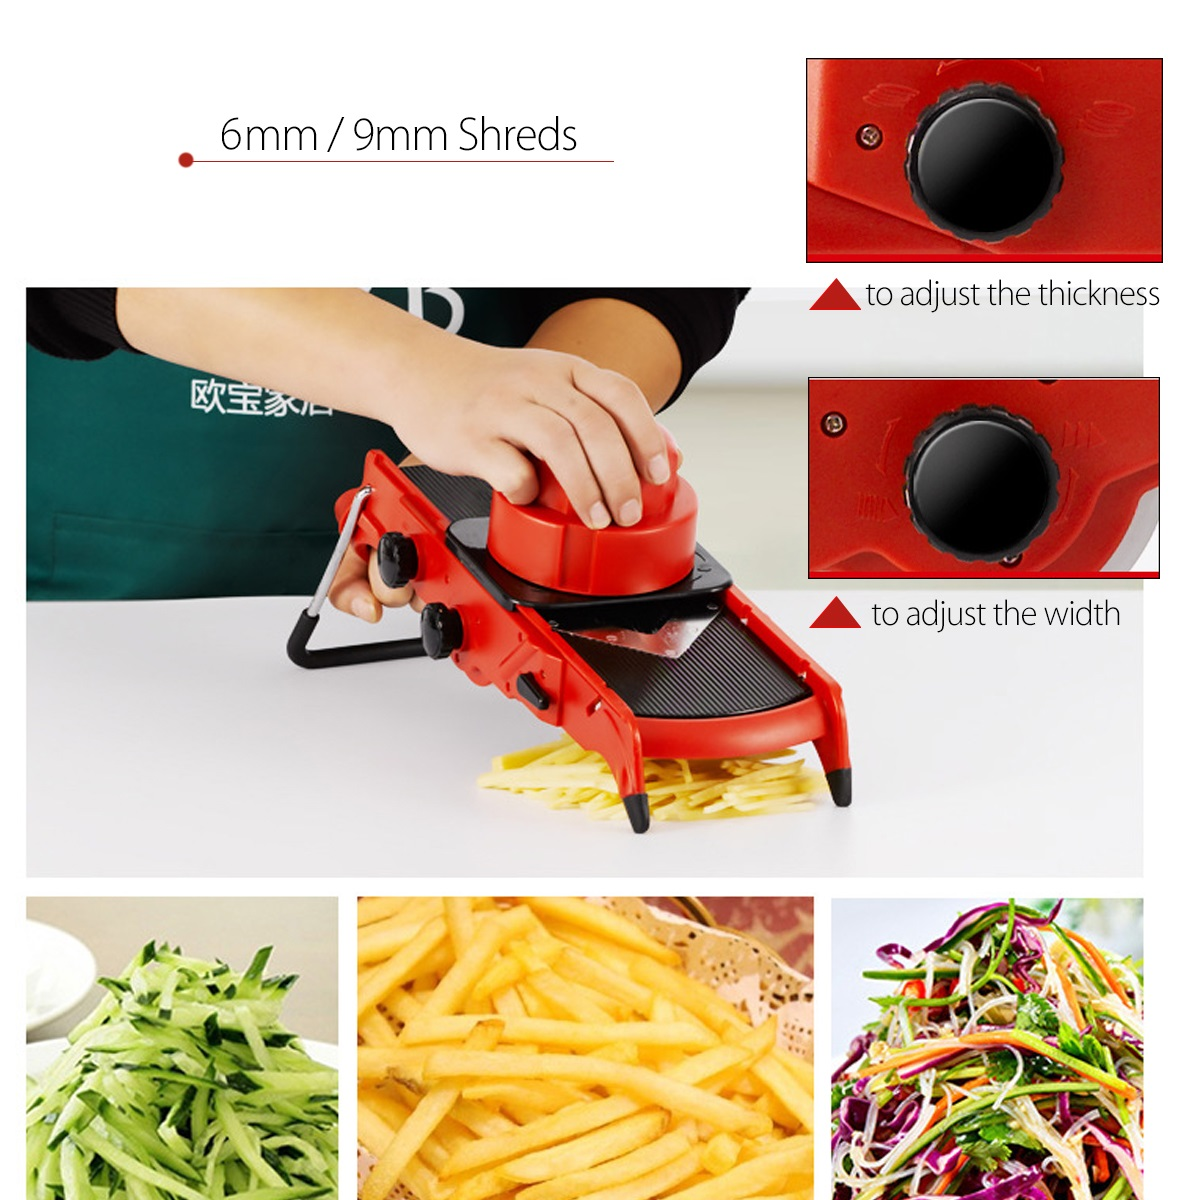 Godmorn Adjustable Vegetable Cutter Slicer Multi-function Food Slicer Fruit Cheese Julienne Slicer